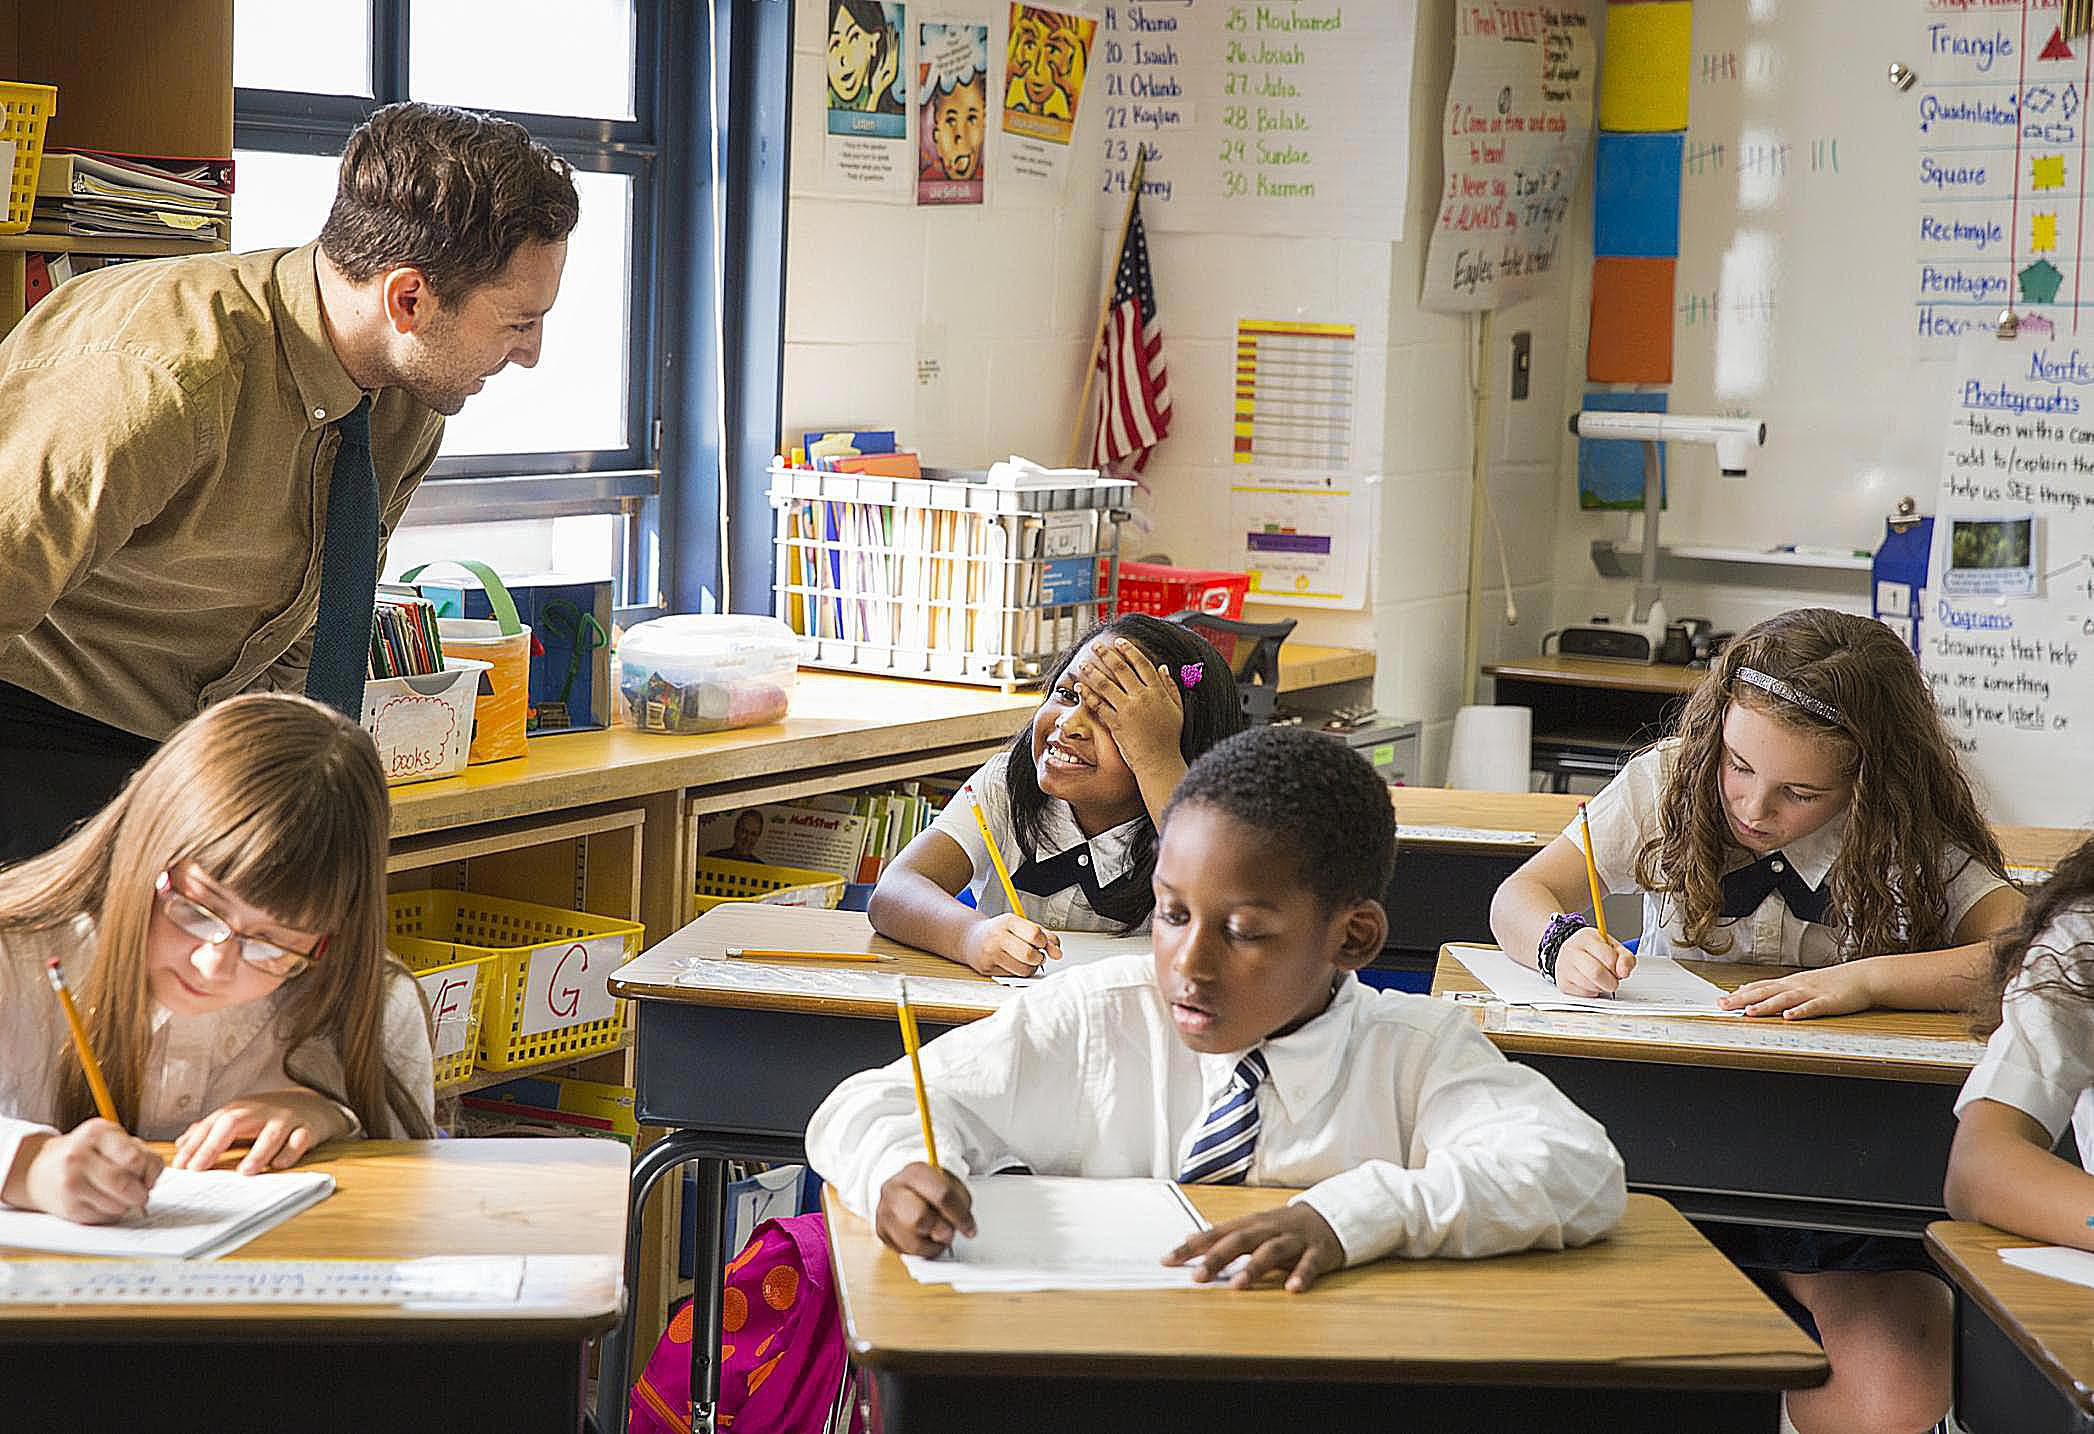 Teacher Helping Students with Writing Assignment